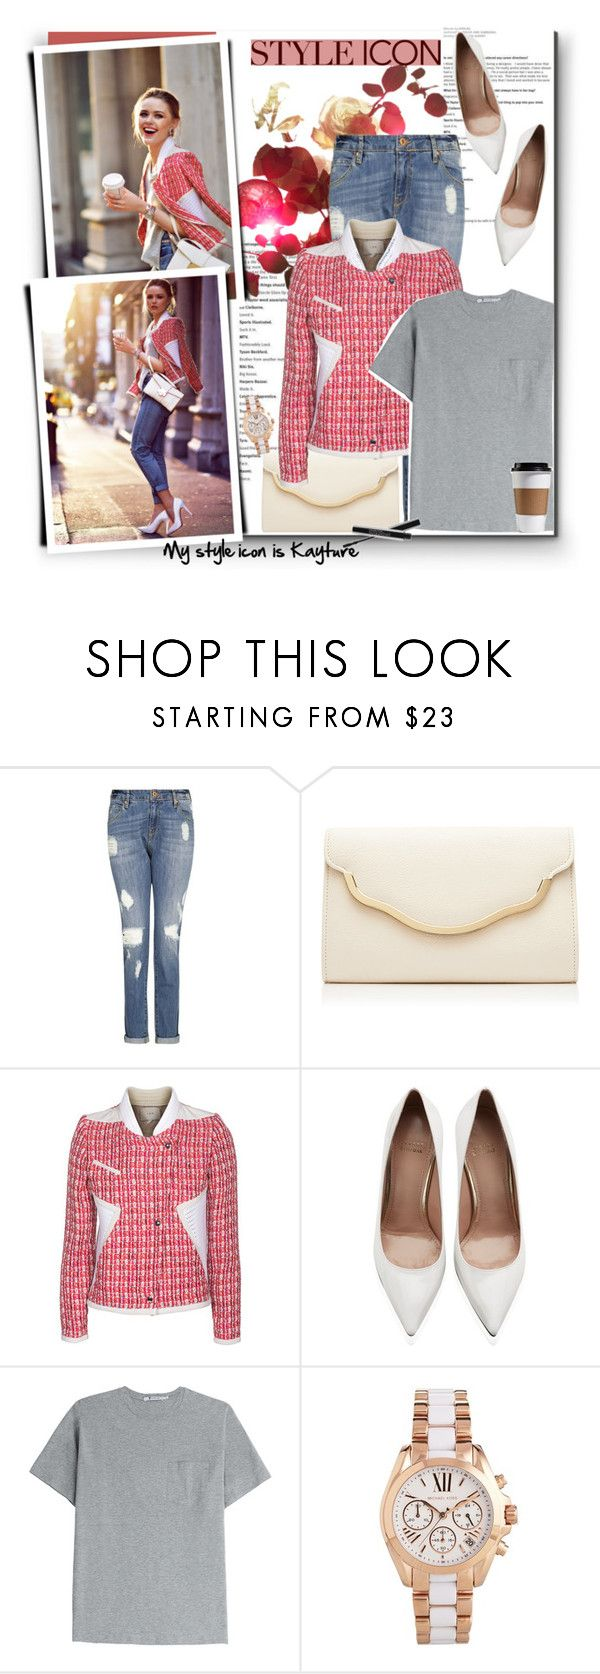 """""""No 237:My Style Icon is Kayture"""" by lovepastel ❤ liked on Polyvore featuring MANGO, Forever New, IRO, Stuart Weitzman, T By Alexander Wang, Michael Kors, Smashbox and styleicon"""